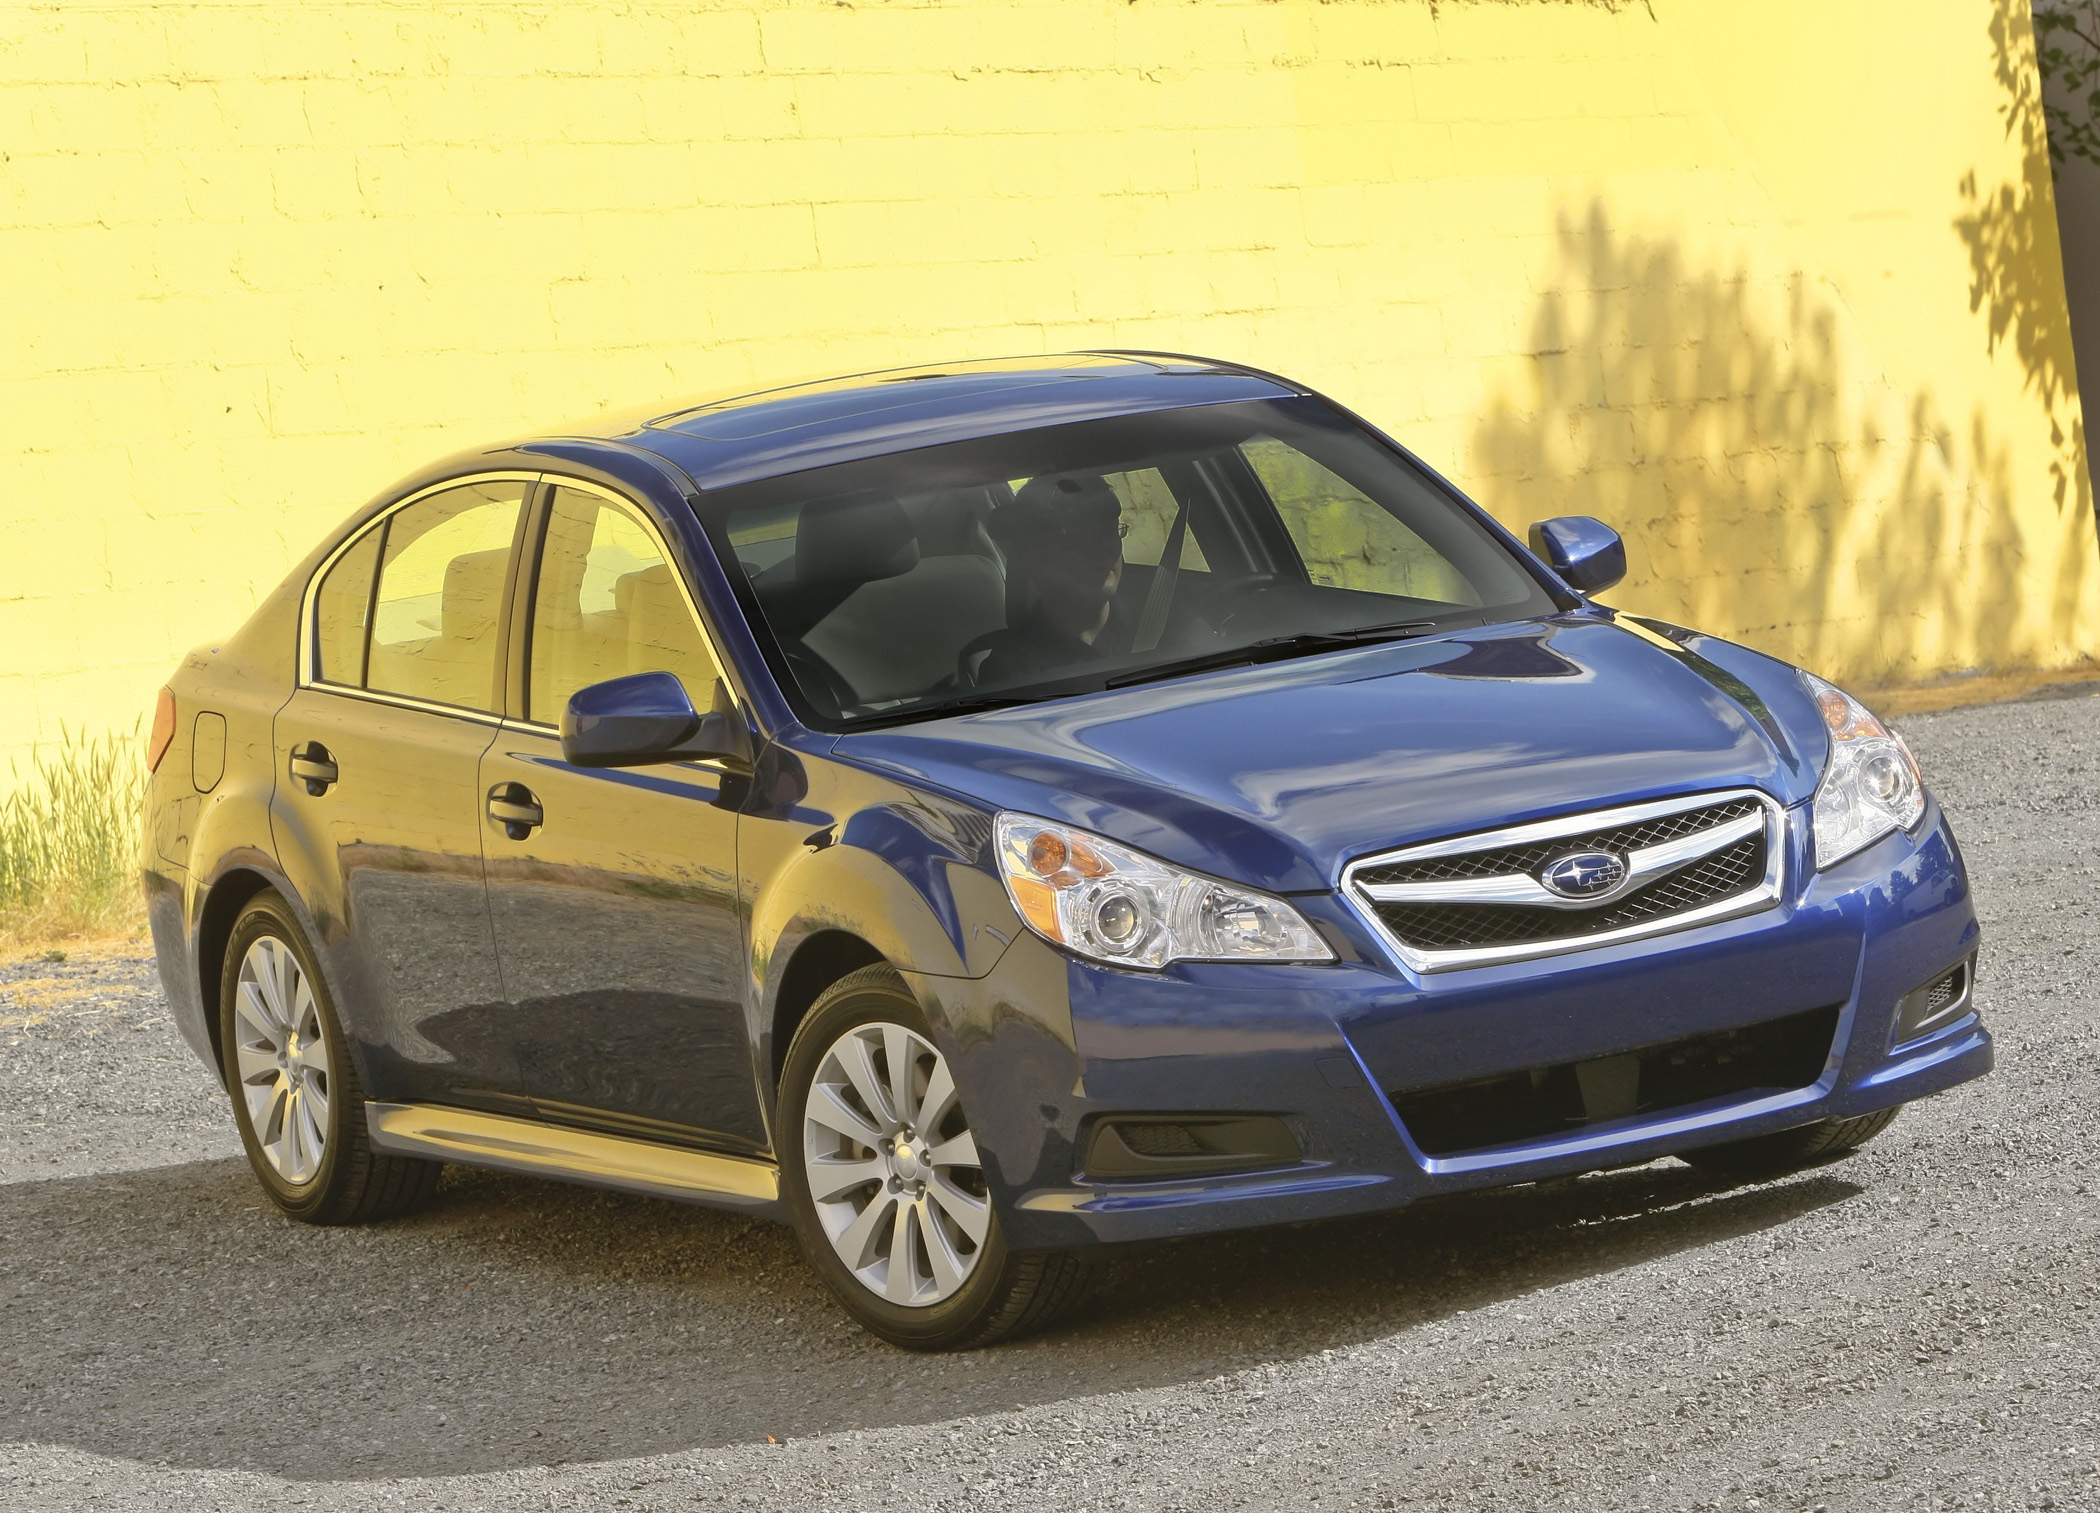 Bigger roomier are themes for all new 2010 subaru outback legacy sure theyre going to boast about their all new 2010 model year products but the figures dont lie both the legacy sedan and outback wagon had vanachro Images